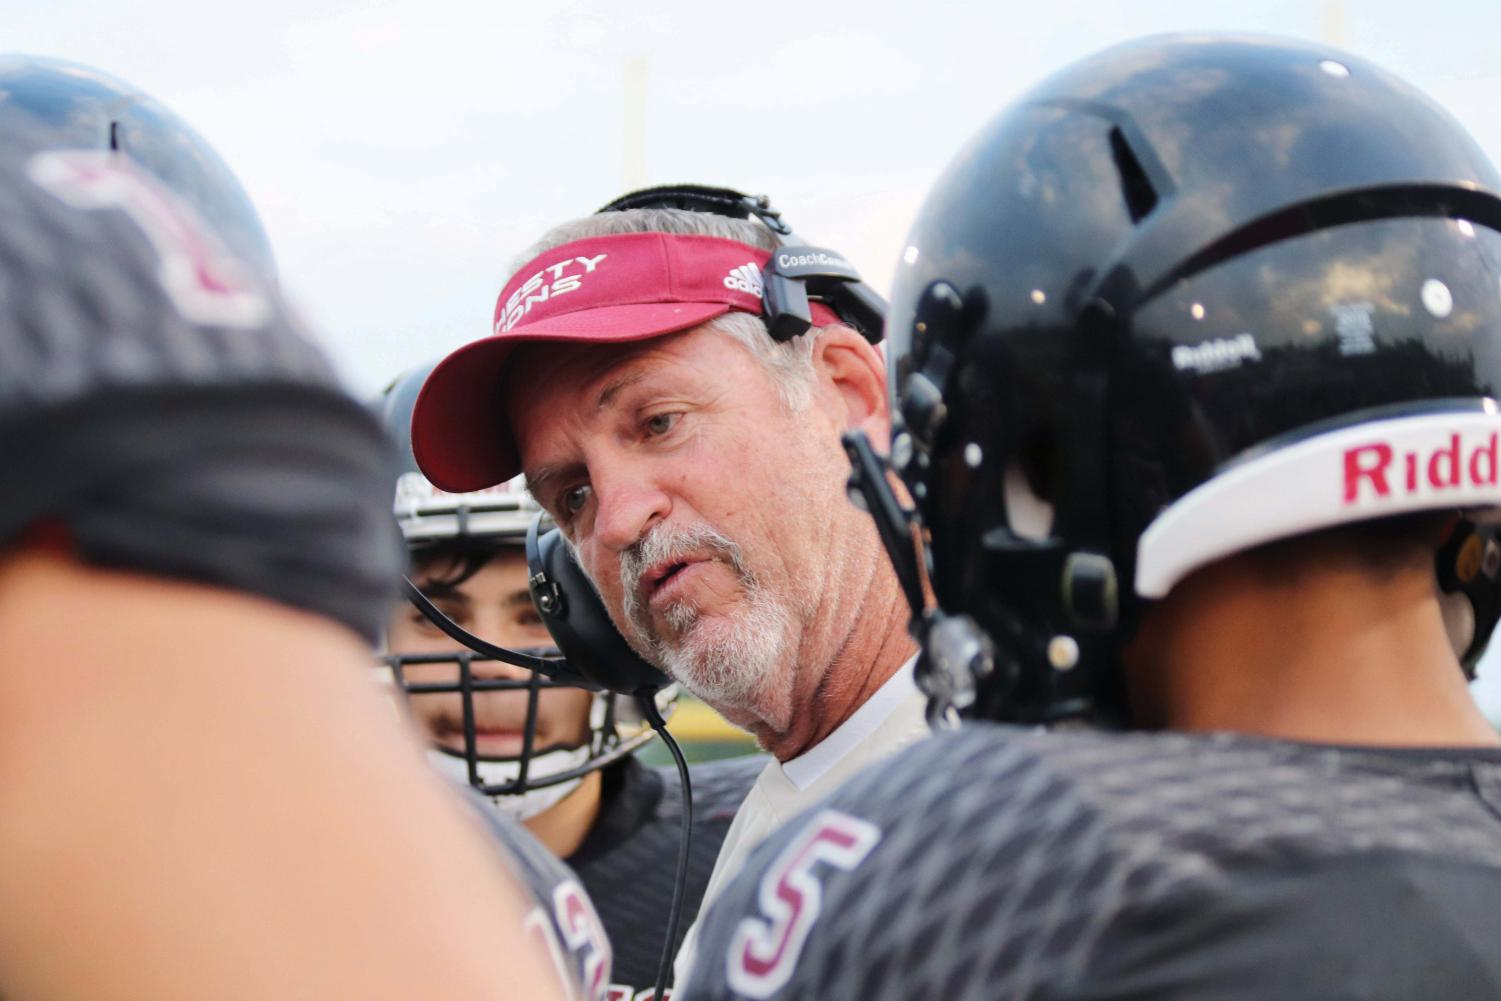 New head football coach, Steve Rampy, calls a play from the sideline during the annual fall sports Jamboree. Rampy, who is entering his 40th season of coaching, was hired this past spring following the retirement of former coach Dirk Wedd.